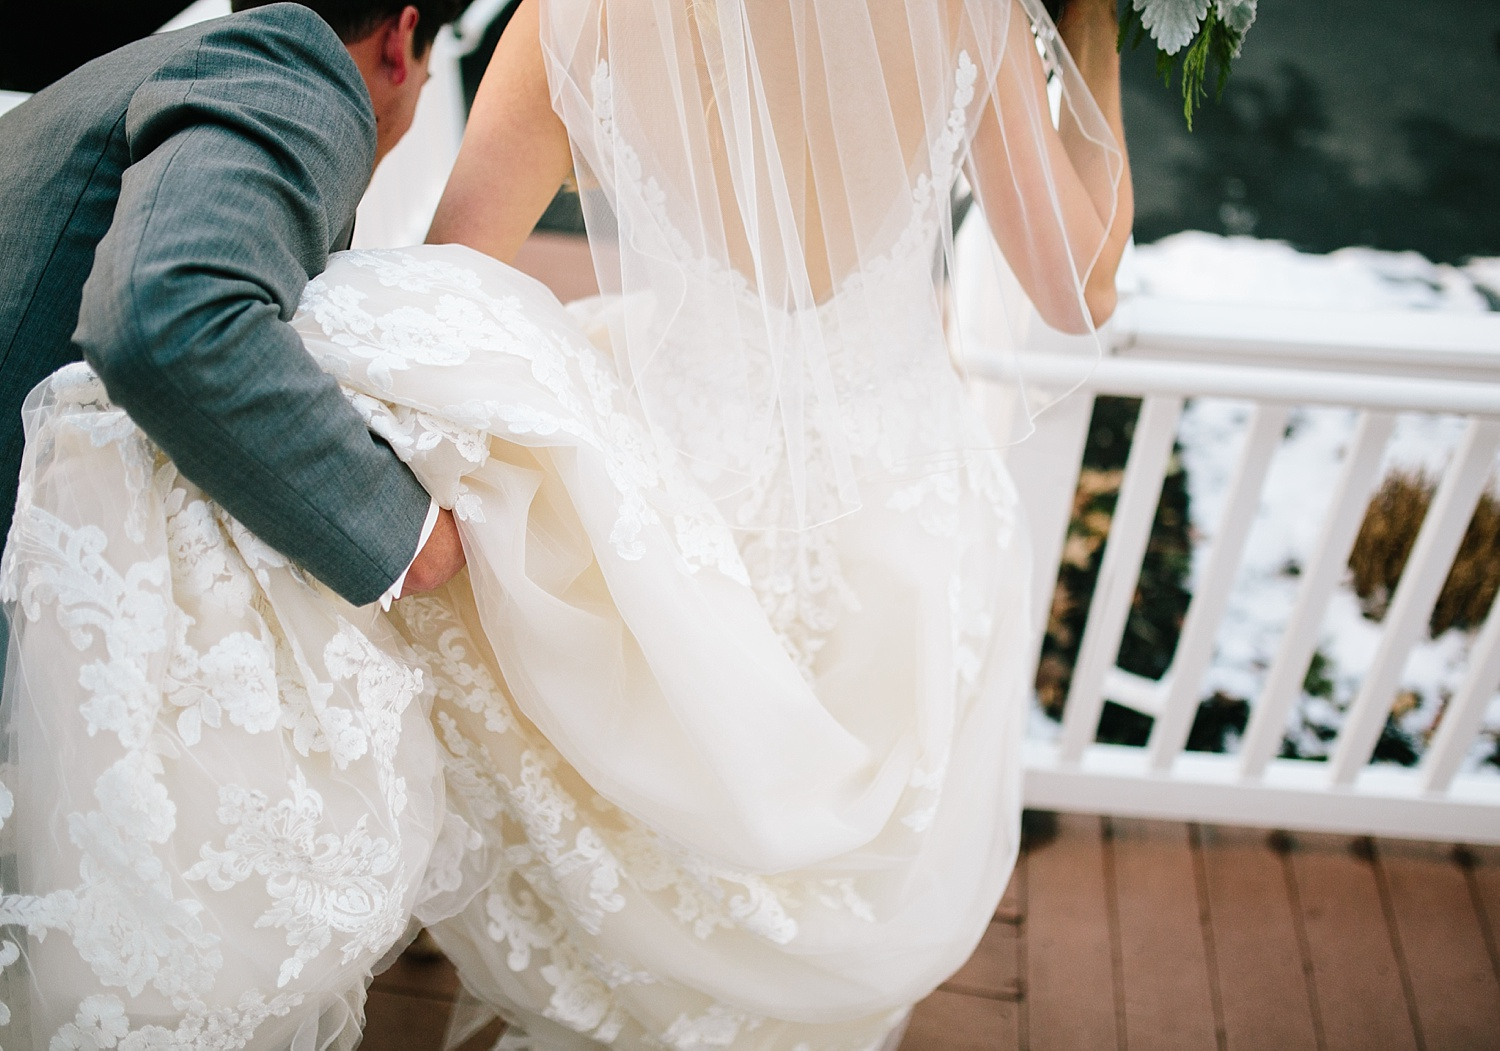 jessdavid_barnonbridge_phoenixville_winter_wedding_image_075.jpg